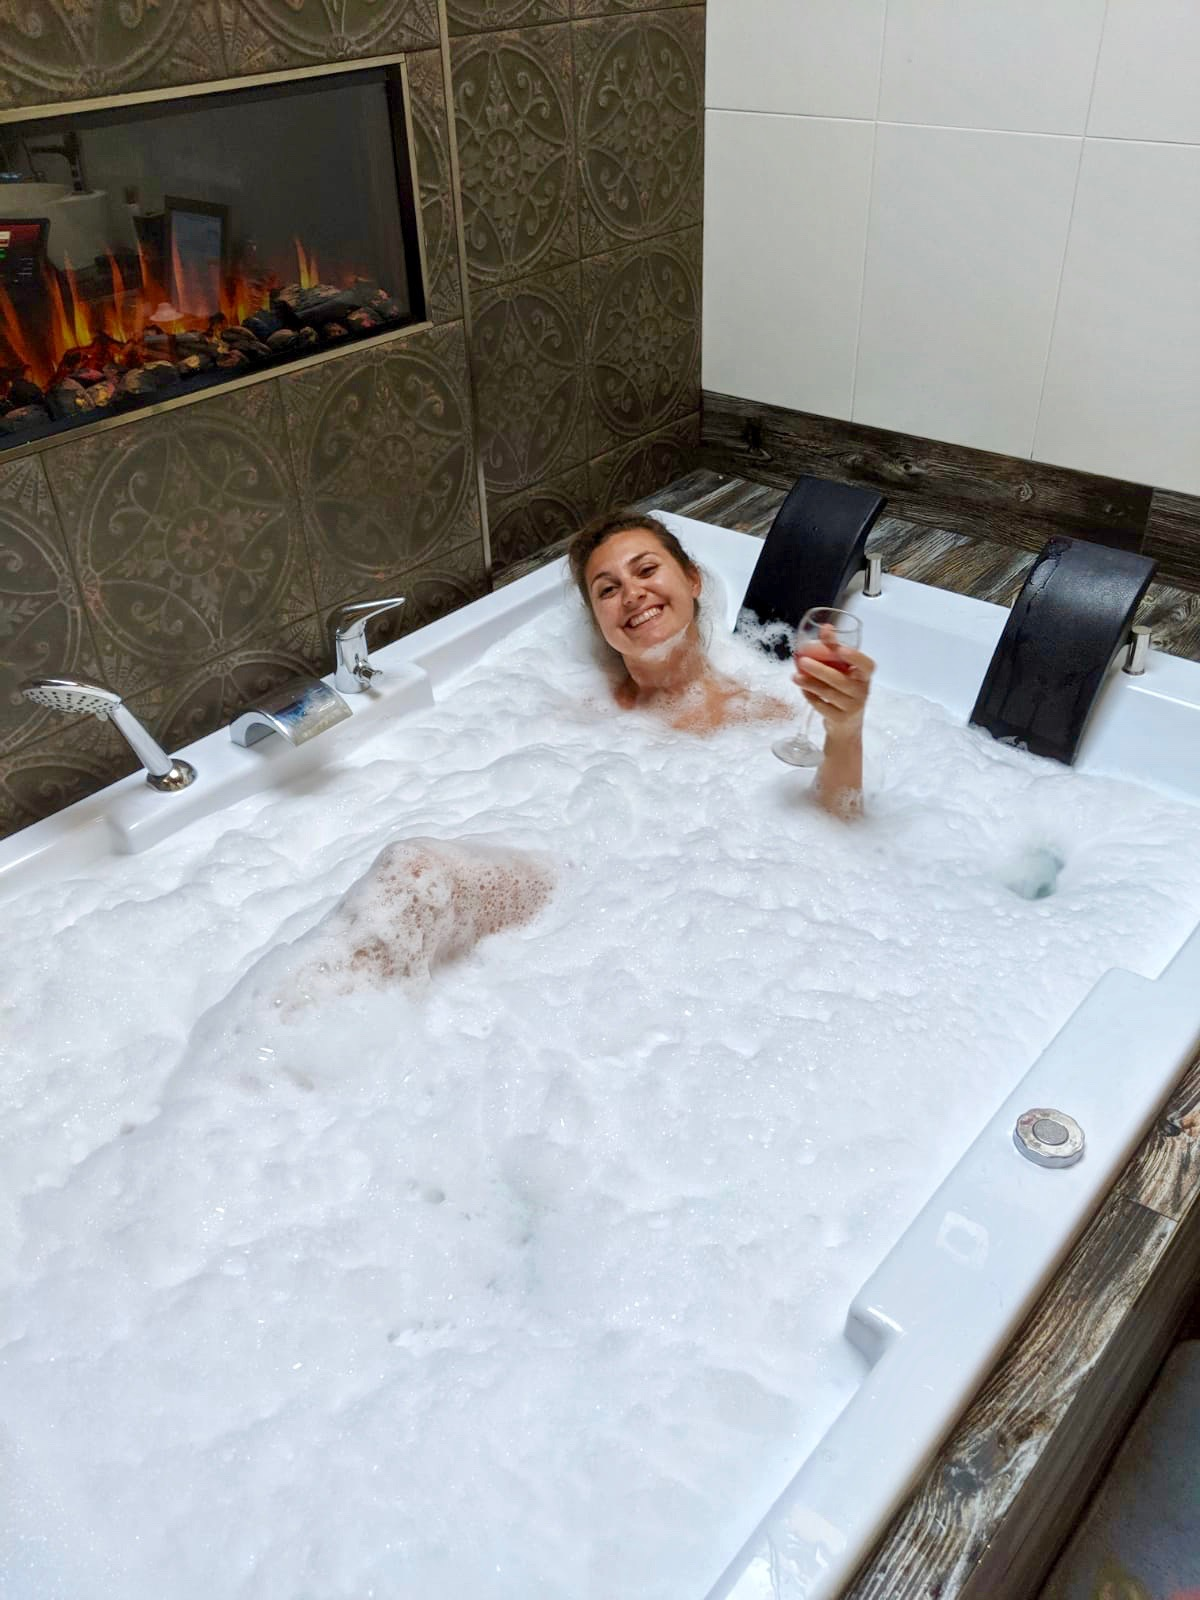 sofia city break: Nell in double sized jacuzzi bath holding a glass of wine. She is covered up to her neck by bubbles.